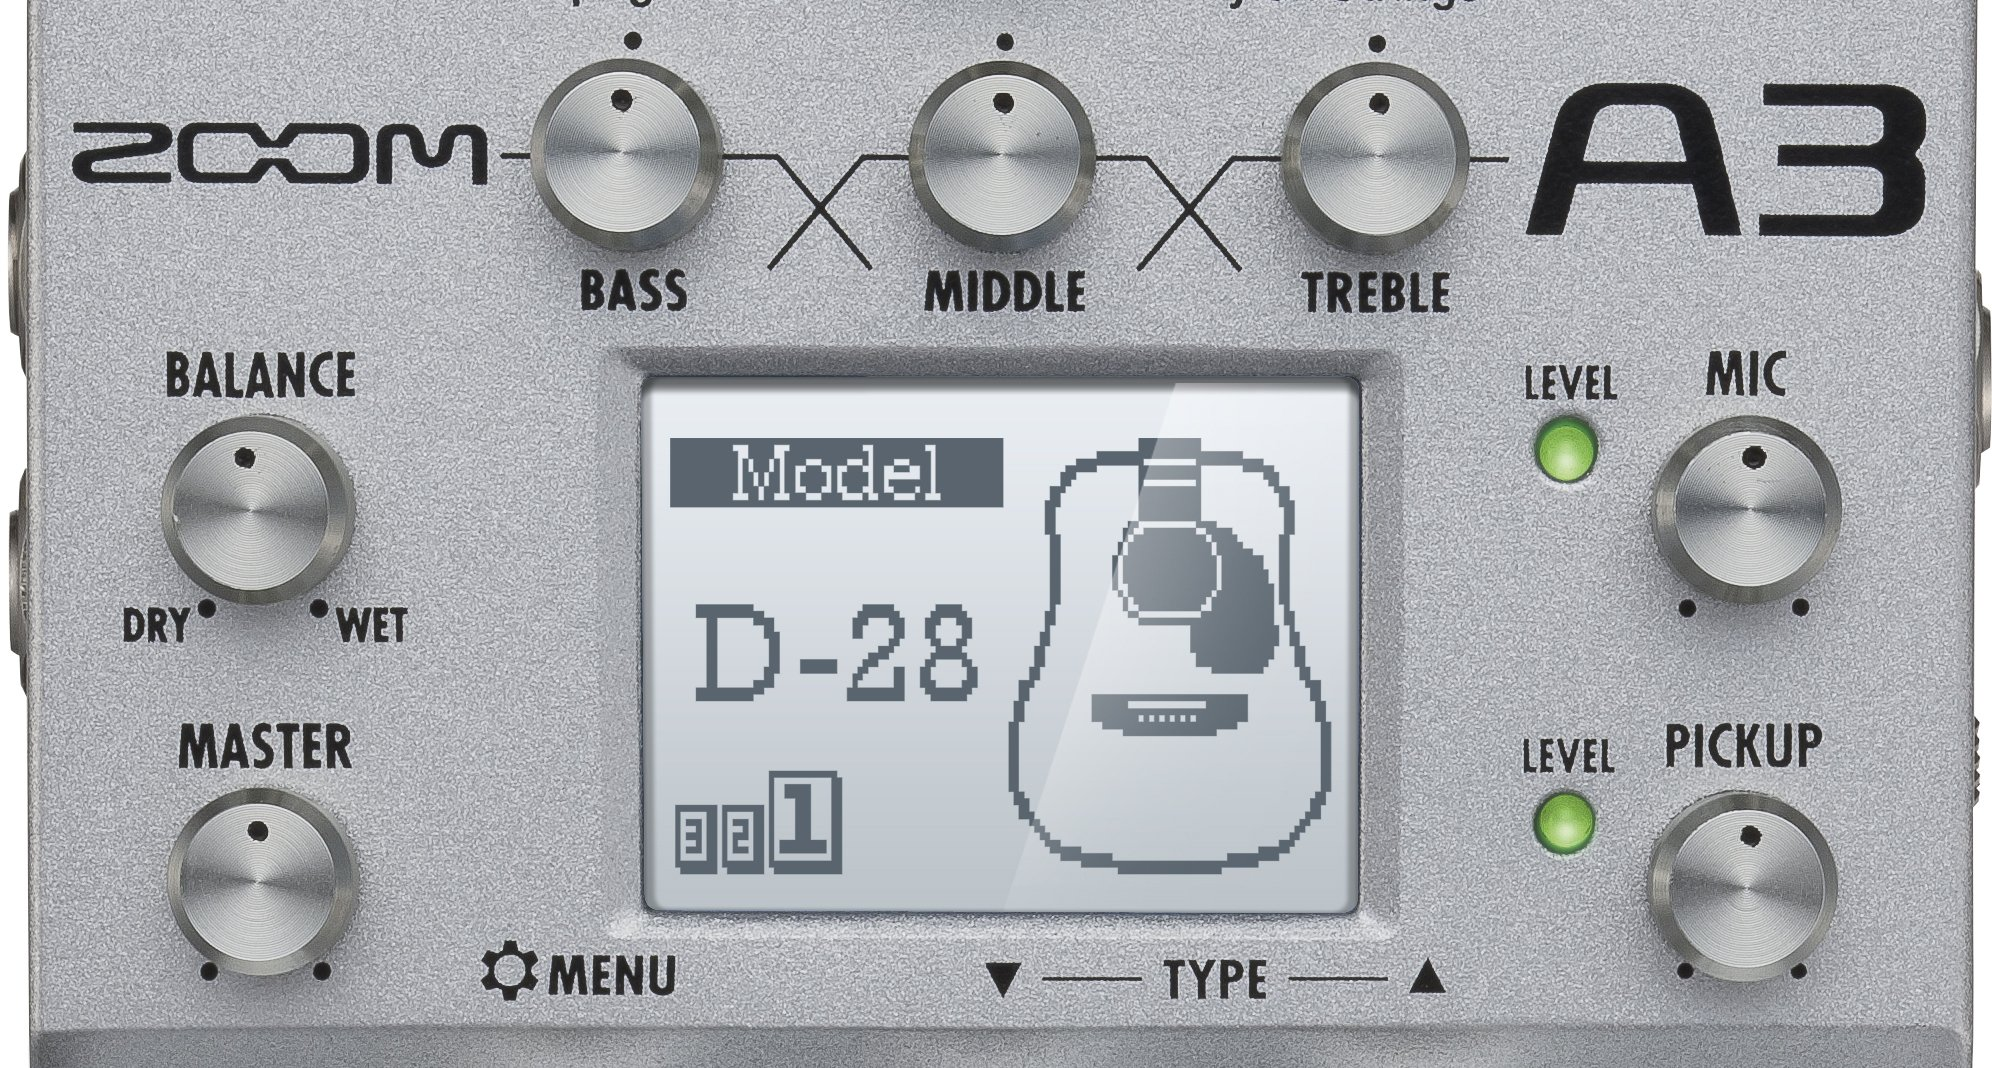 Zoom A3 Pre-Amp and Effects for Acoustic Guitar by Zoom